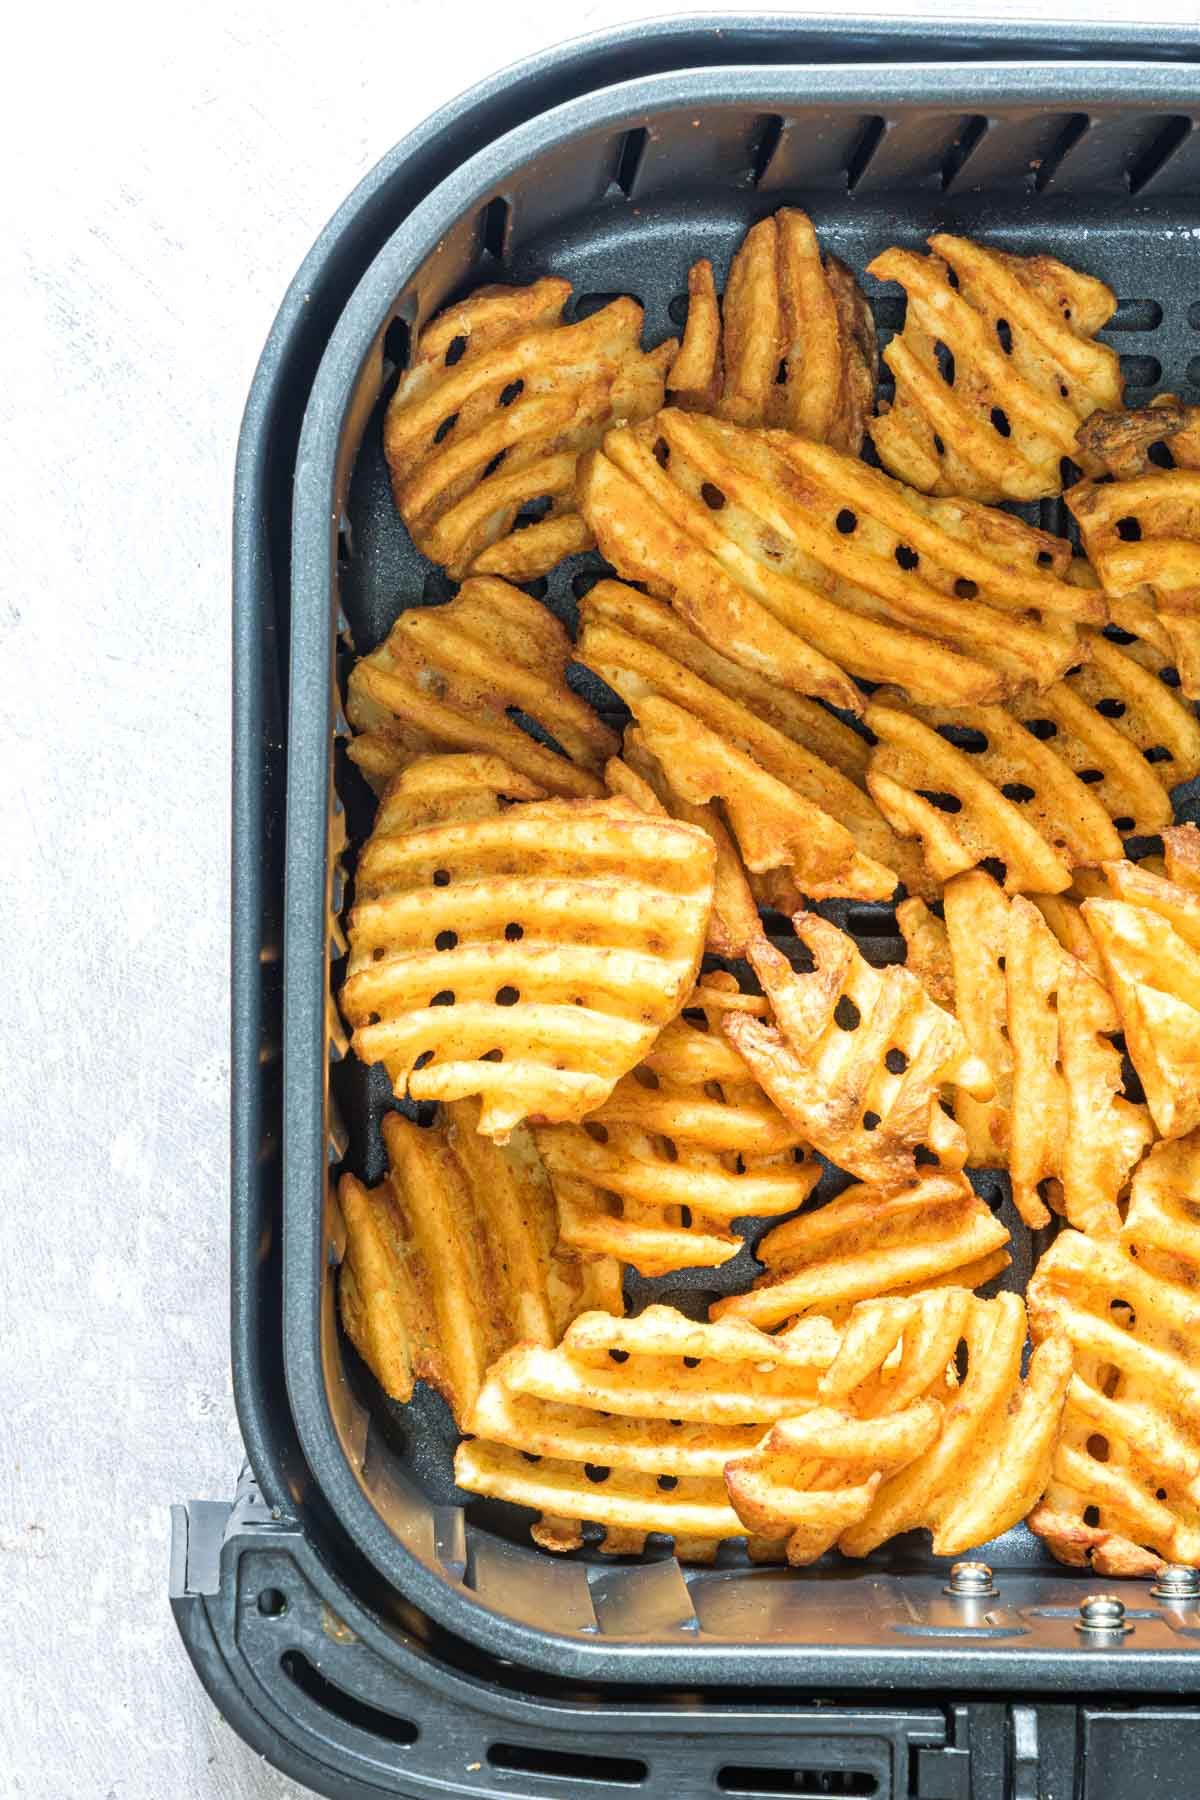 close up view of the frozen waffle fries in air fryer basket